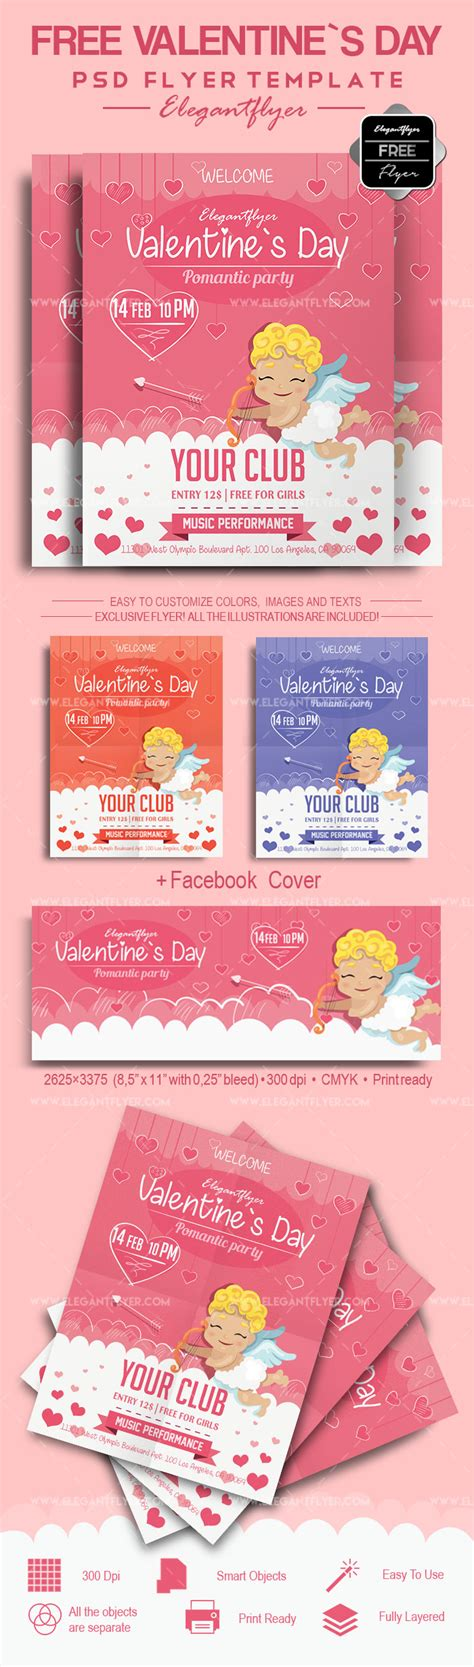 vakentine card photoshop template s day free flyer psd template by